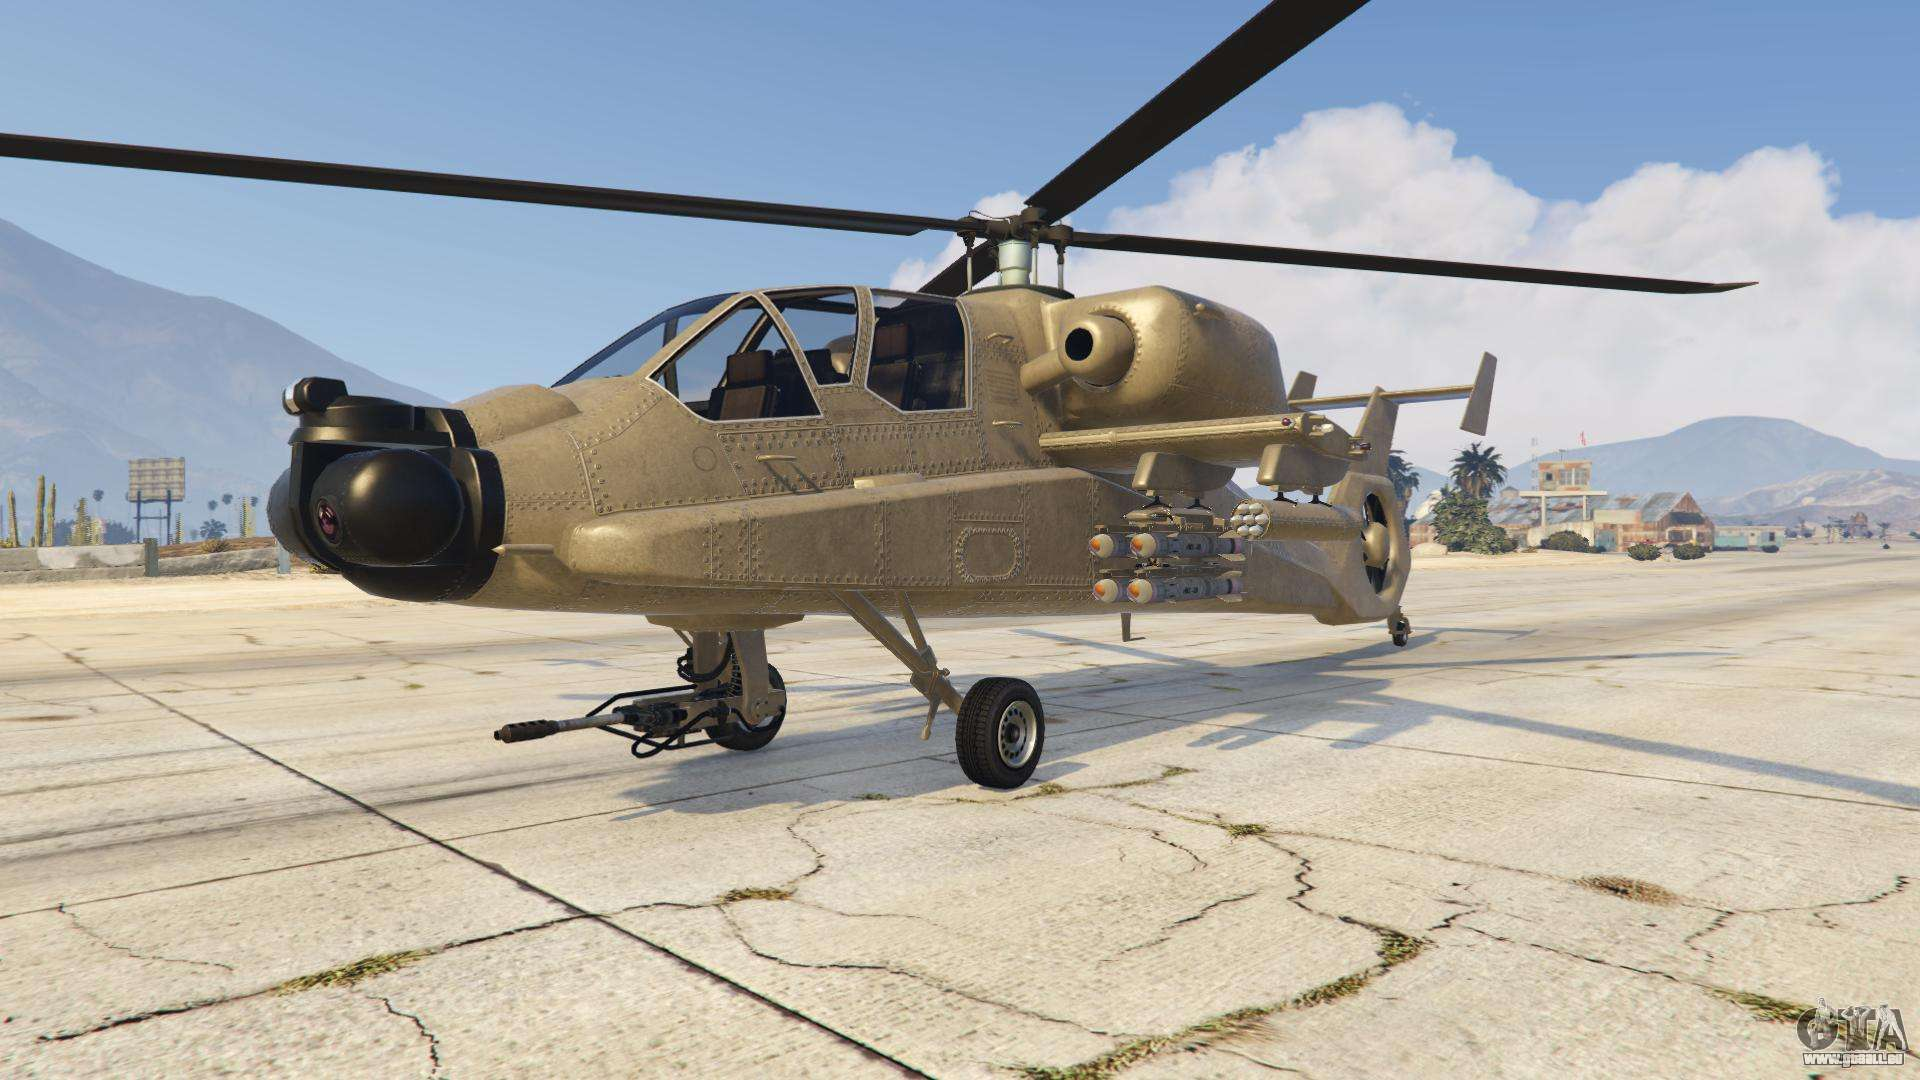 gta liberty city helicopter cheats with 28134 Fh 1 Hunter on Wallpaper besides 28134 Fh 1 Hunter besides  furthermore Gta V Cheats For Ps4 Ps3 moreover Gta Tbogt Cheats.